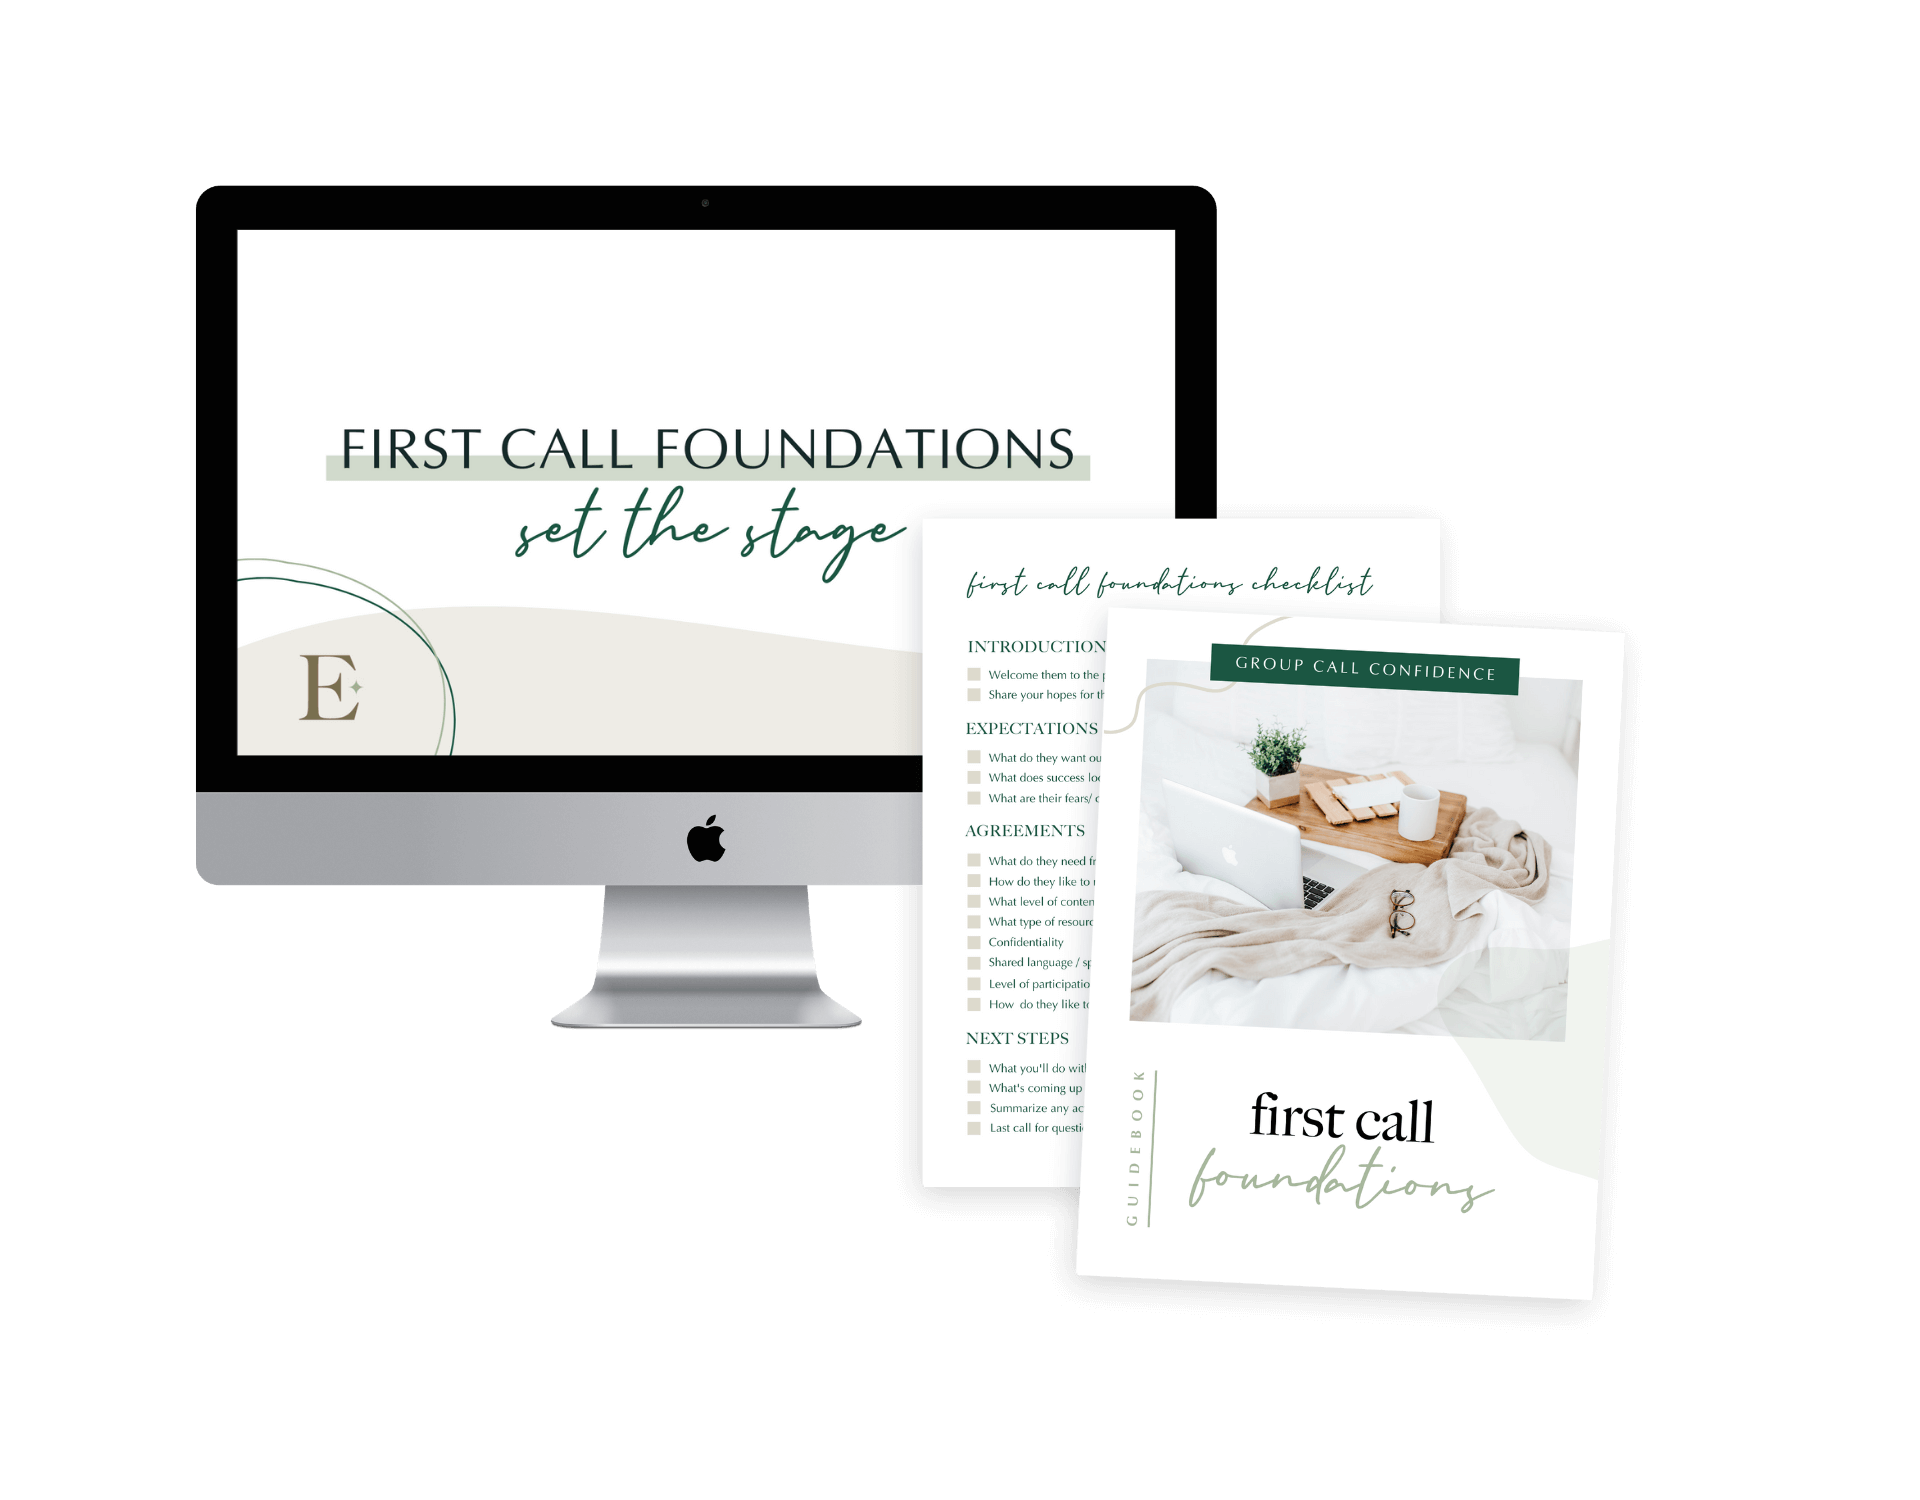 First Call Foundations (1) (1)